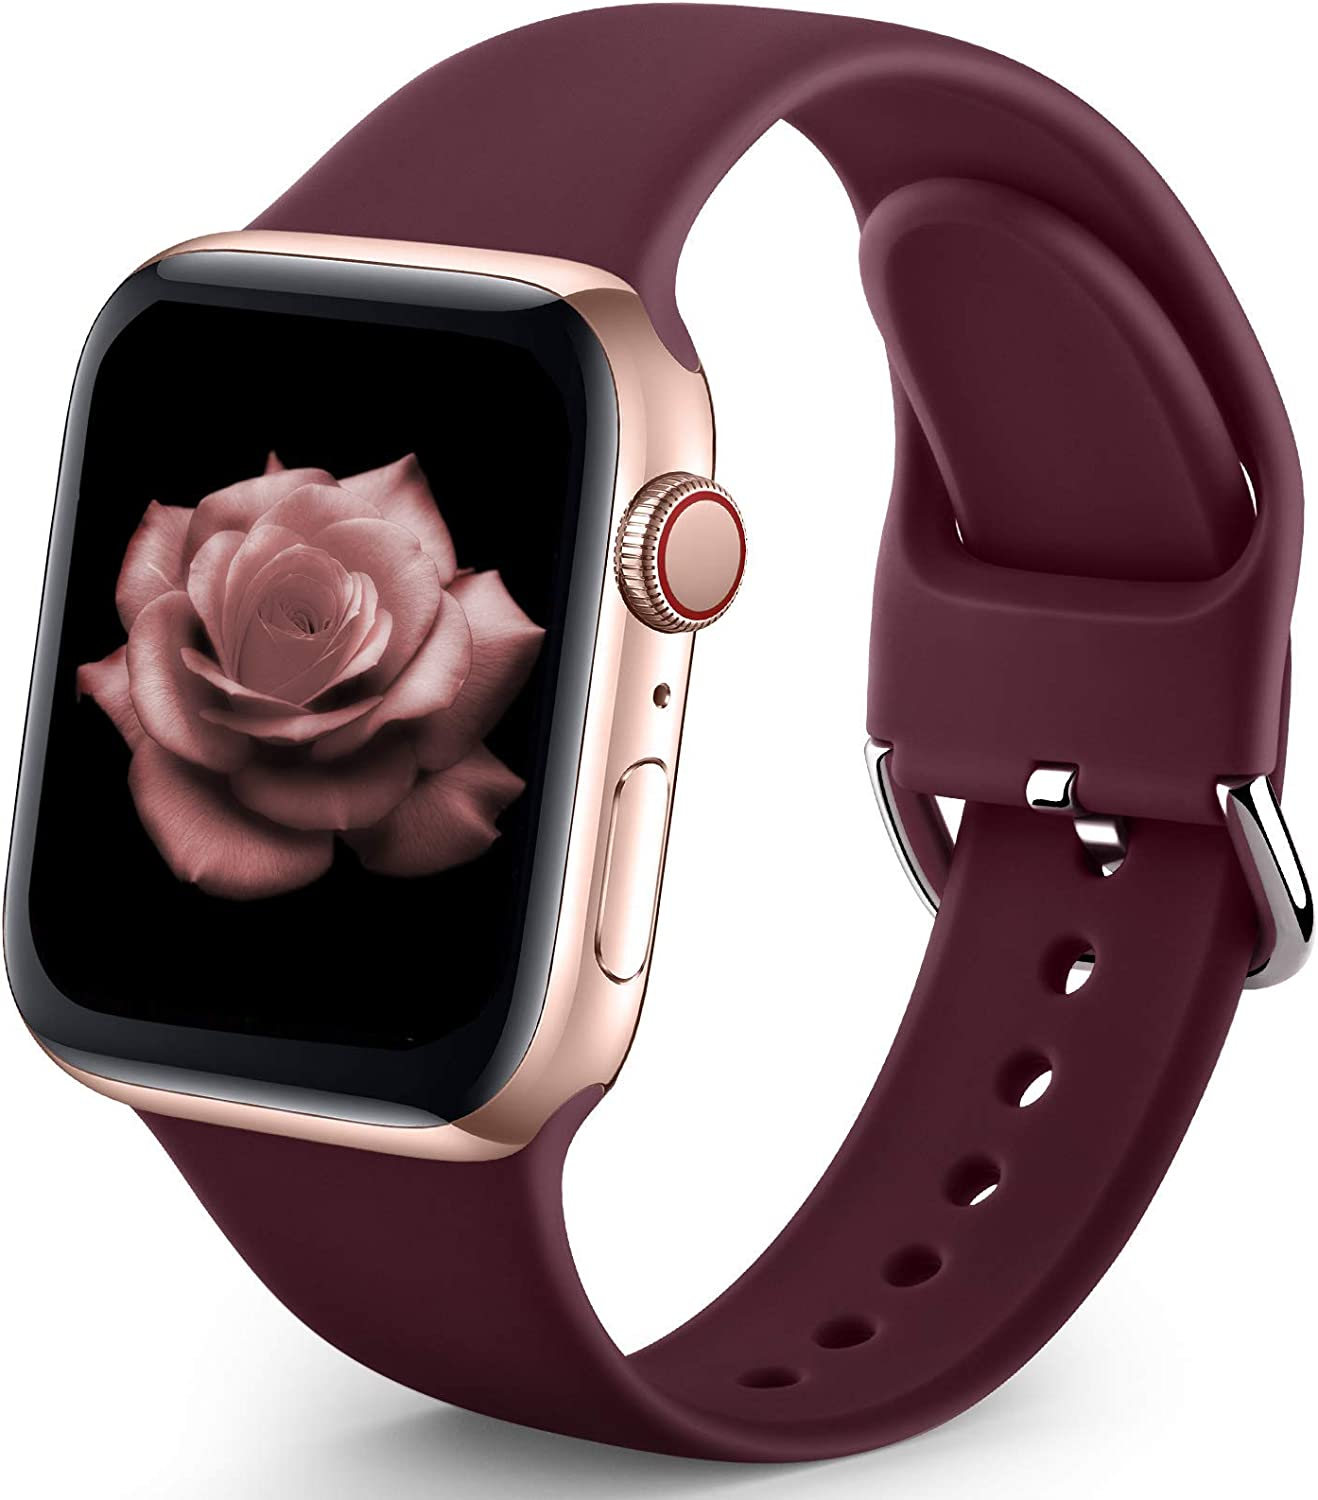 Sport Band Compatible with Apple Watch iWatch Bands 38mm 40mm for Women Men,Soft Silicone Strap Wristbands for Apple Watch Series 3 Series 6 Series 5 Series 4 Series 2 Series 1 Series SE,Burgundy